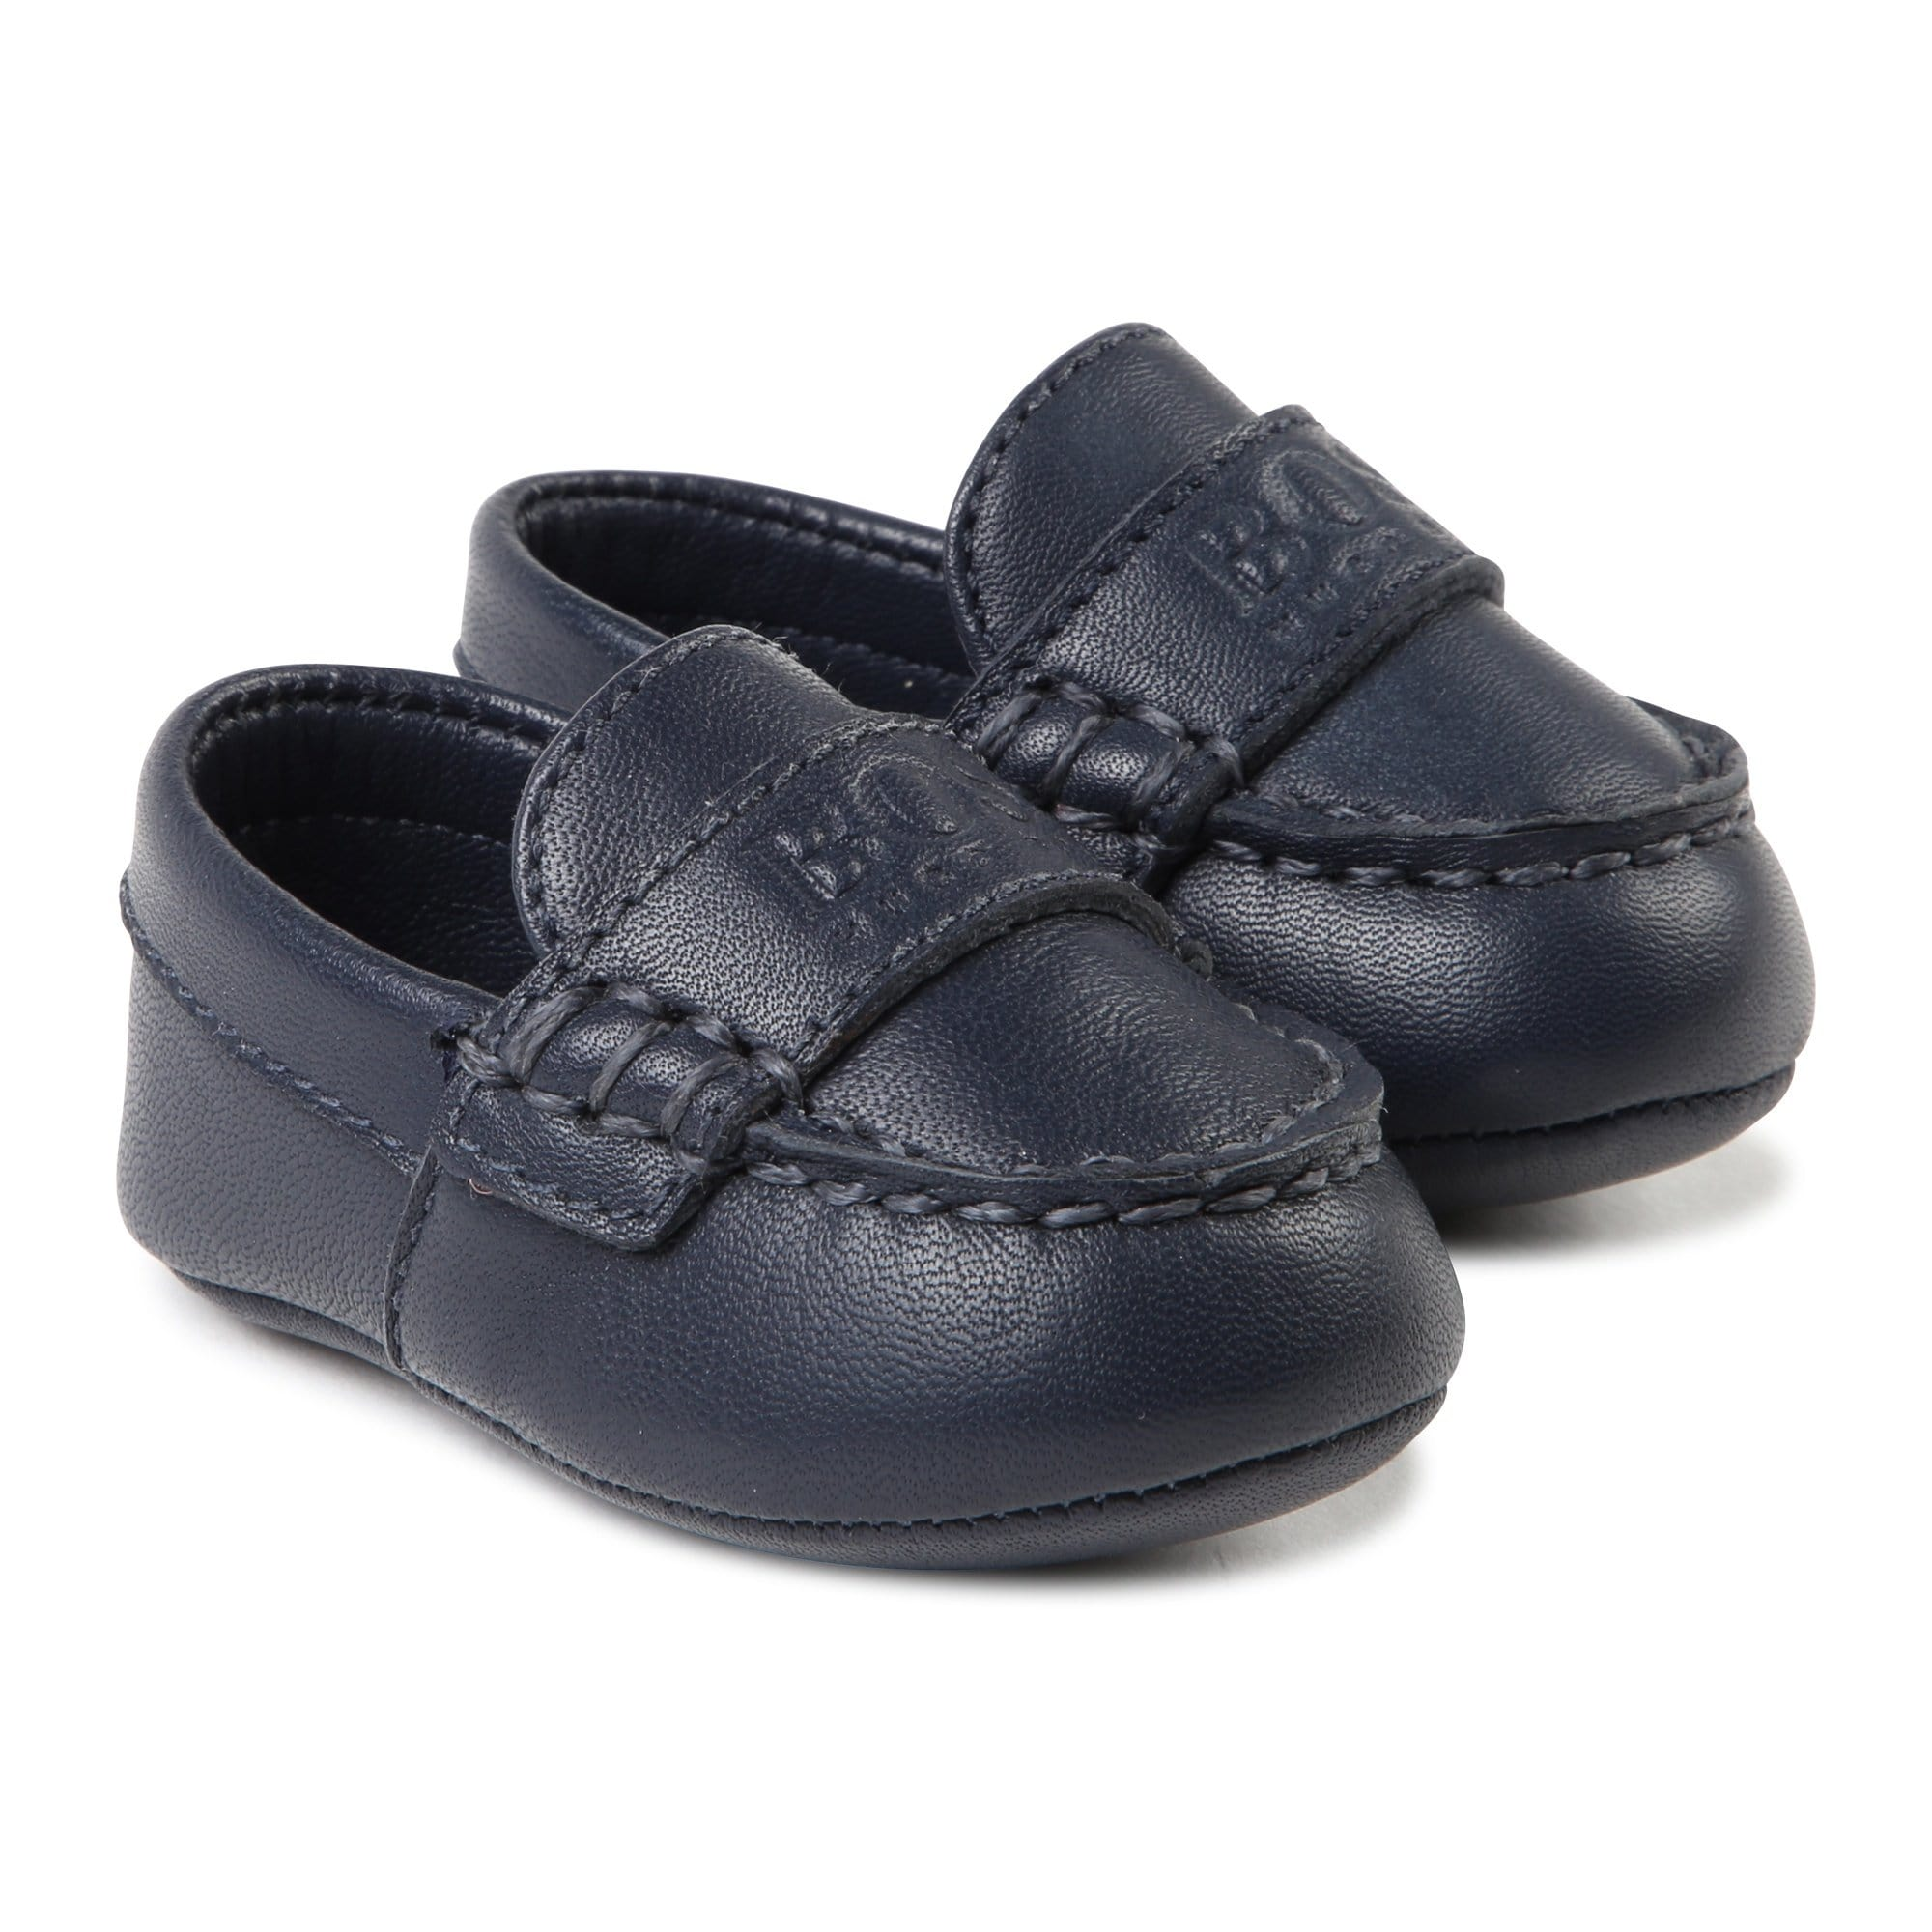 Hugo Boss Baby Boys Moccasin